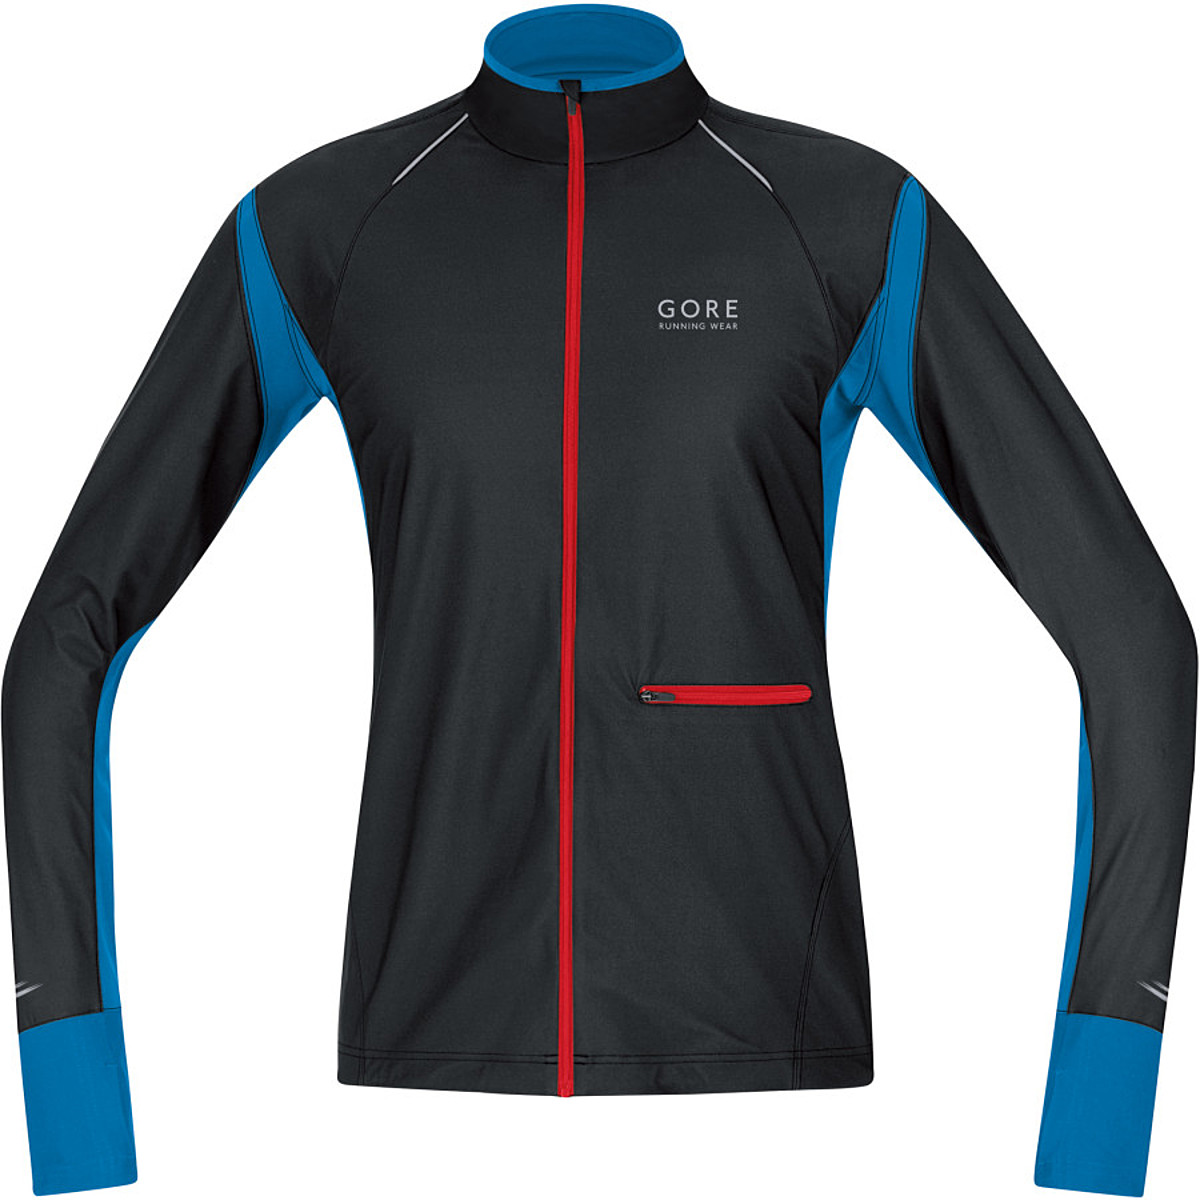 Gore Air WS Jacket